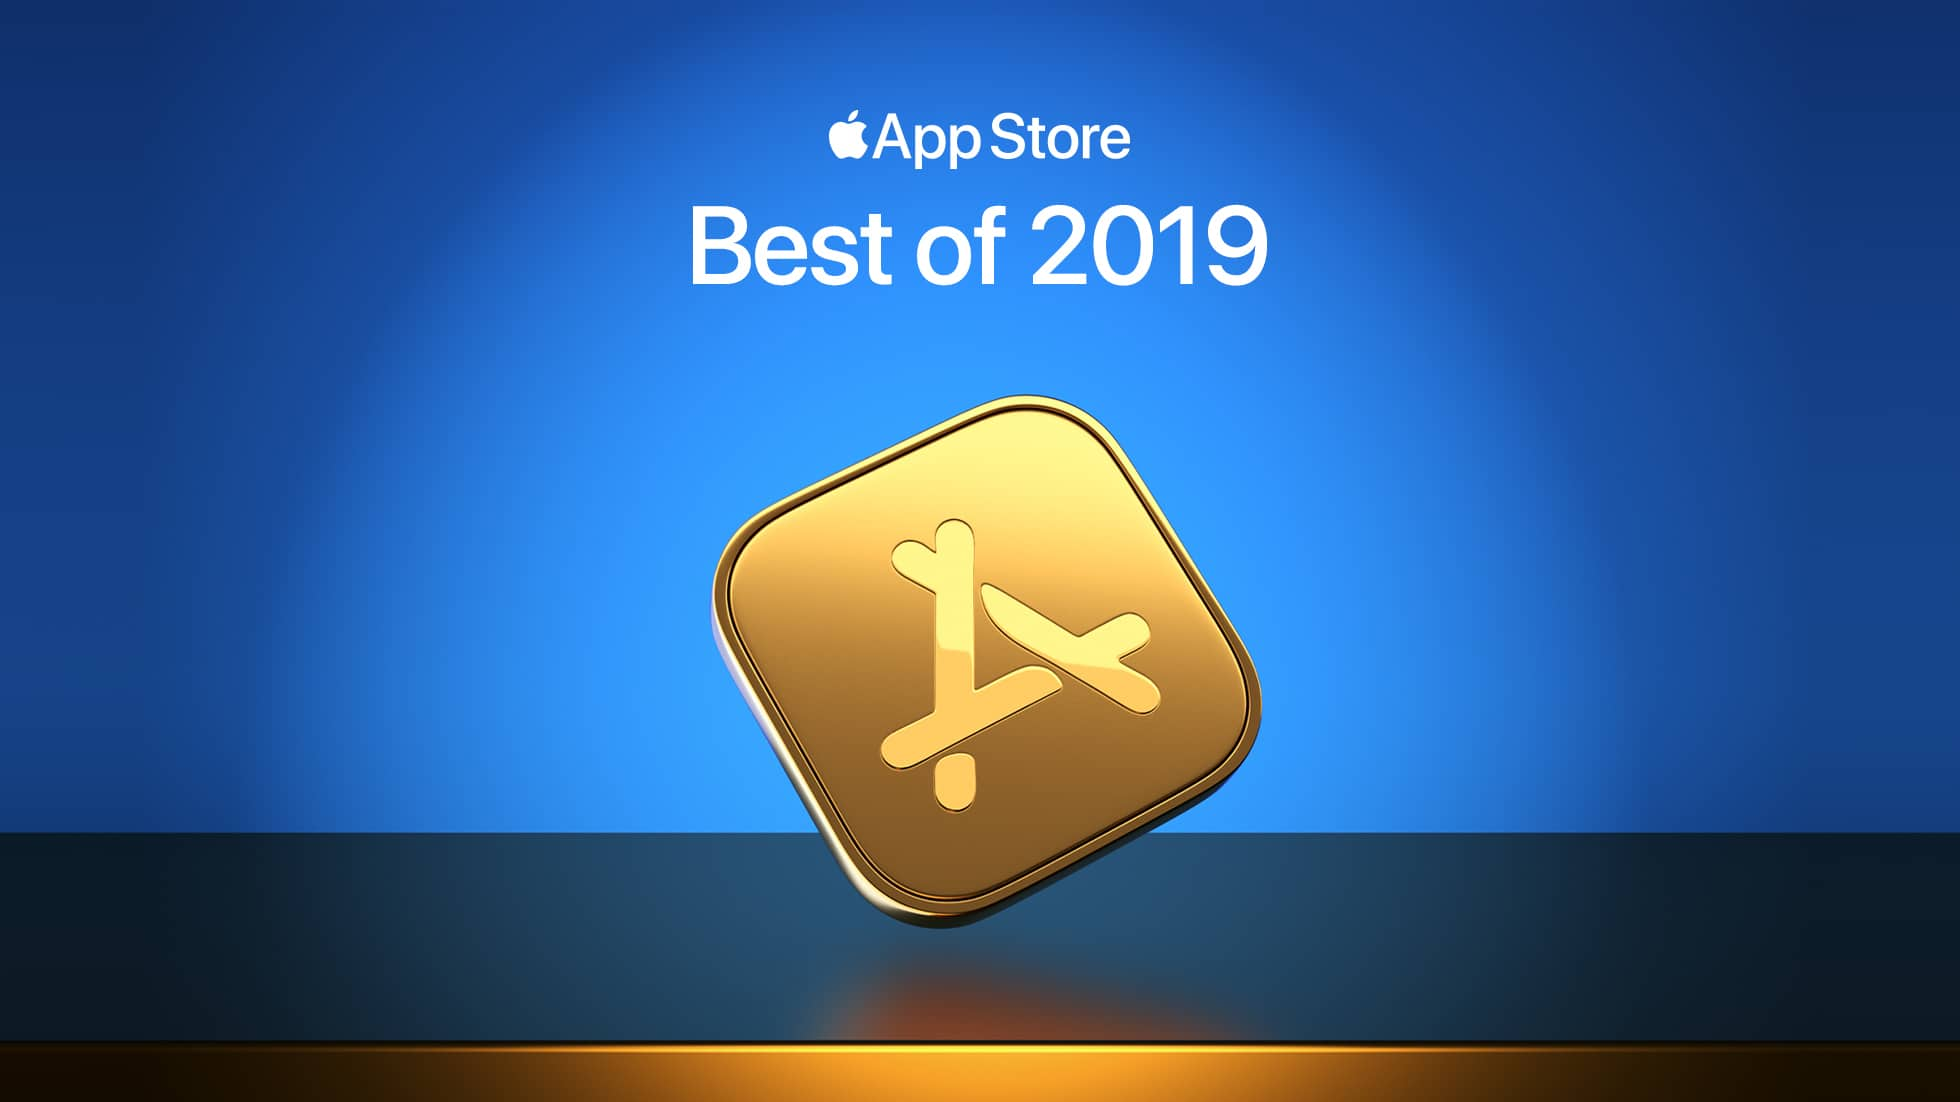 Apple_Best-of-2019_Best-Apps-Games_120219